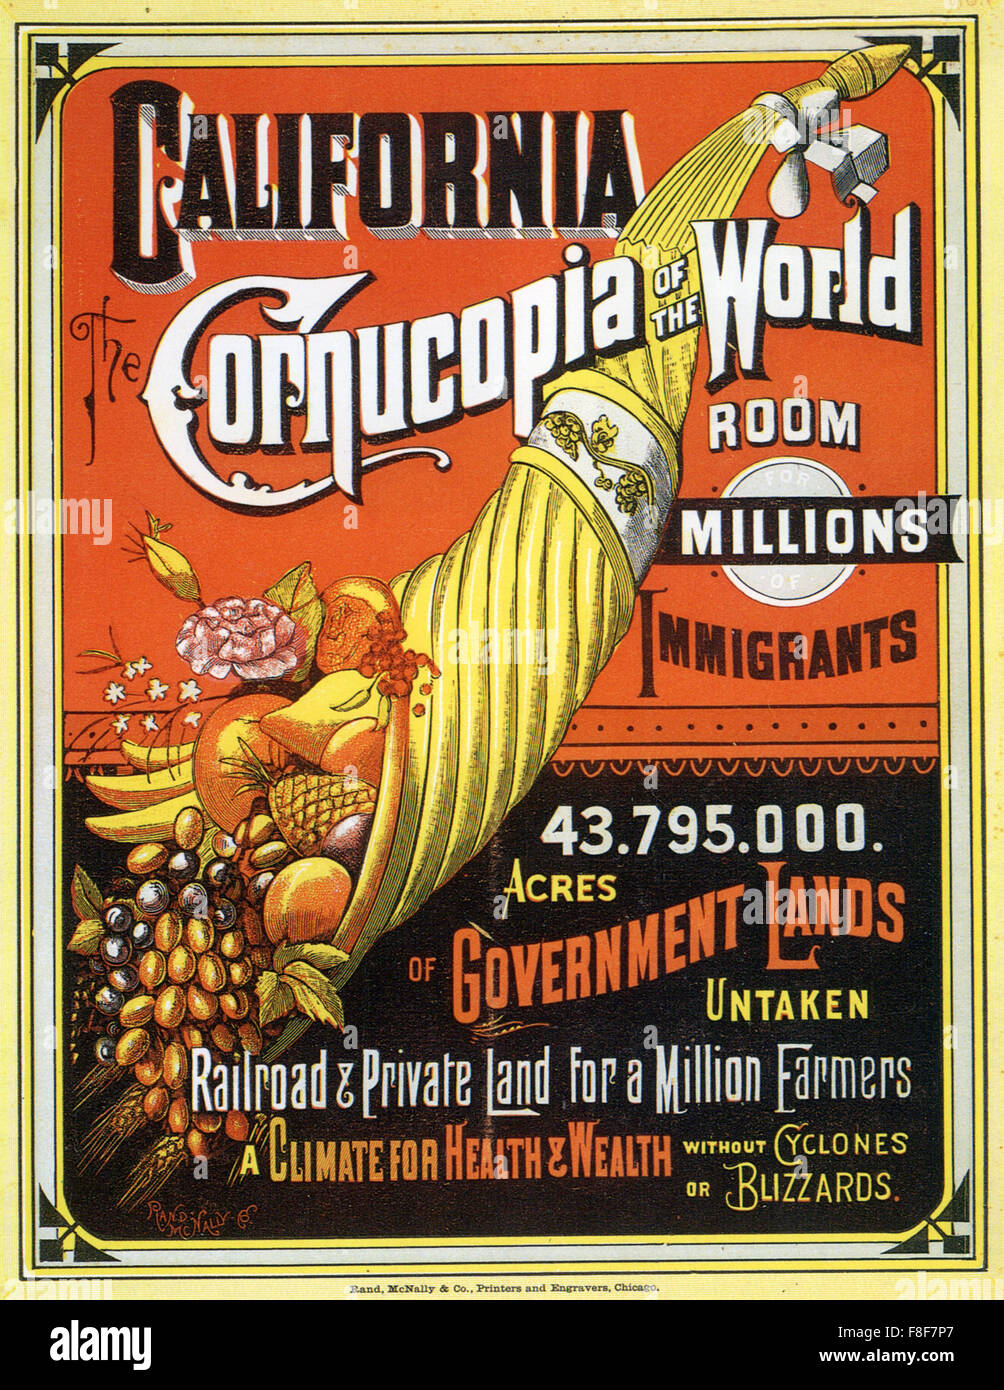 CALIFORNIA - THE CORNUCOPIA OF THE WORLD  Poster published in 1883 extolling the virtues of free land, climate and - Stock Image